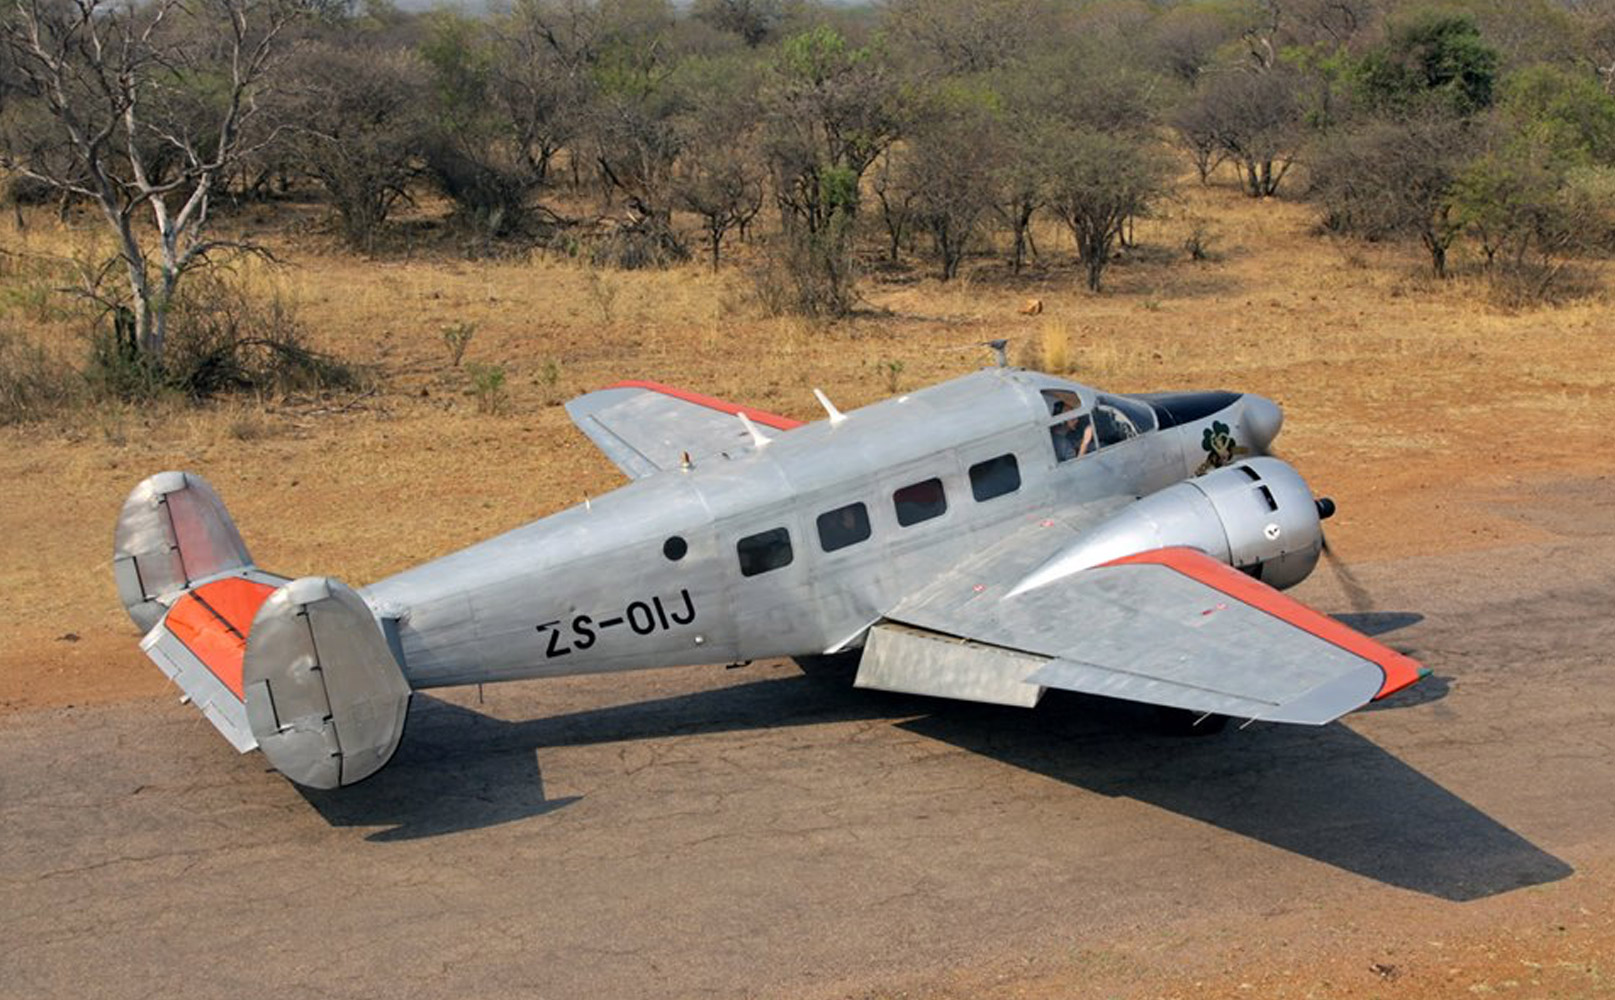 ZS-OIJ Beech E18S Springbok Classic Air at Mongena Game Lodge back in October 2015